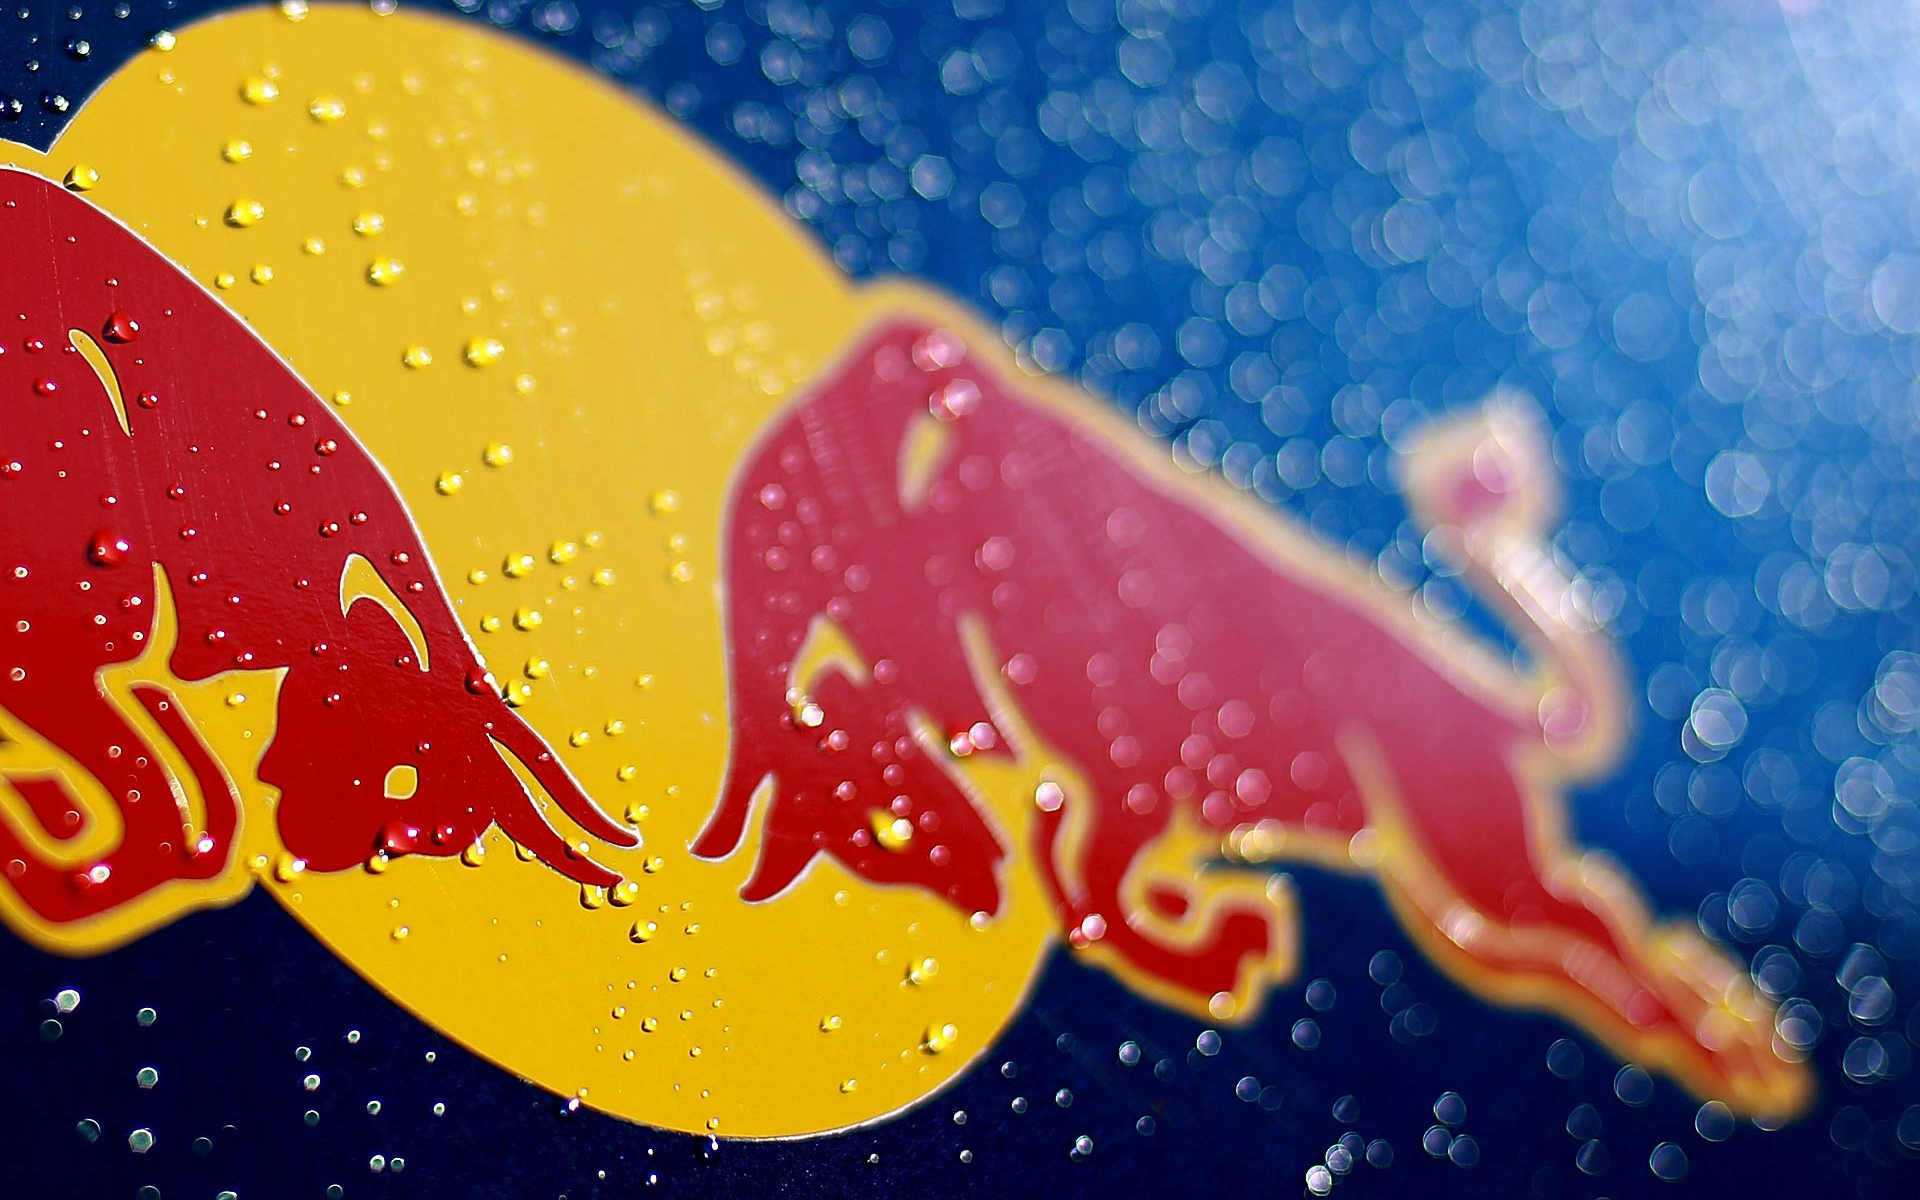 Excellent Red Bull Wallpaper